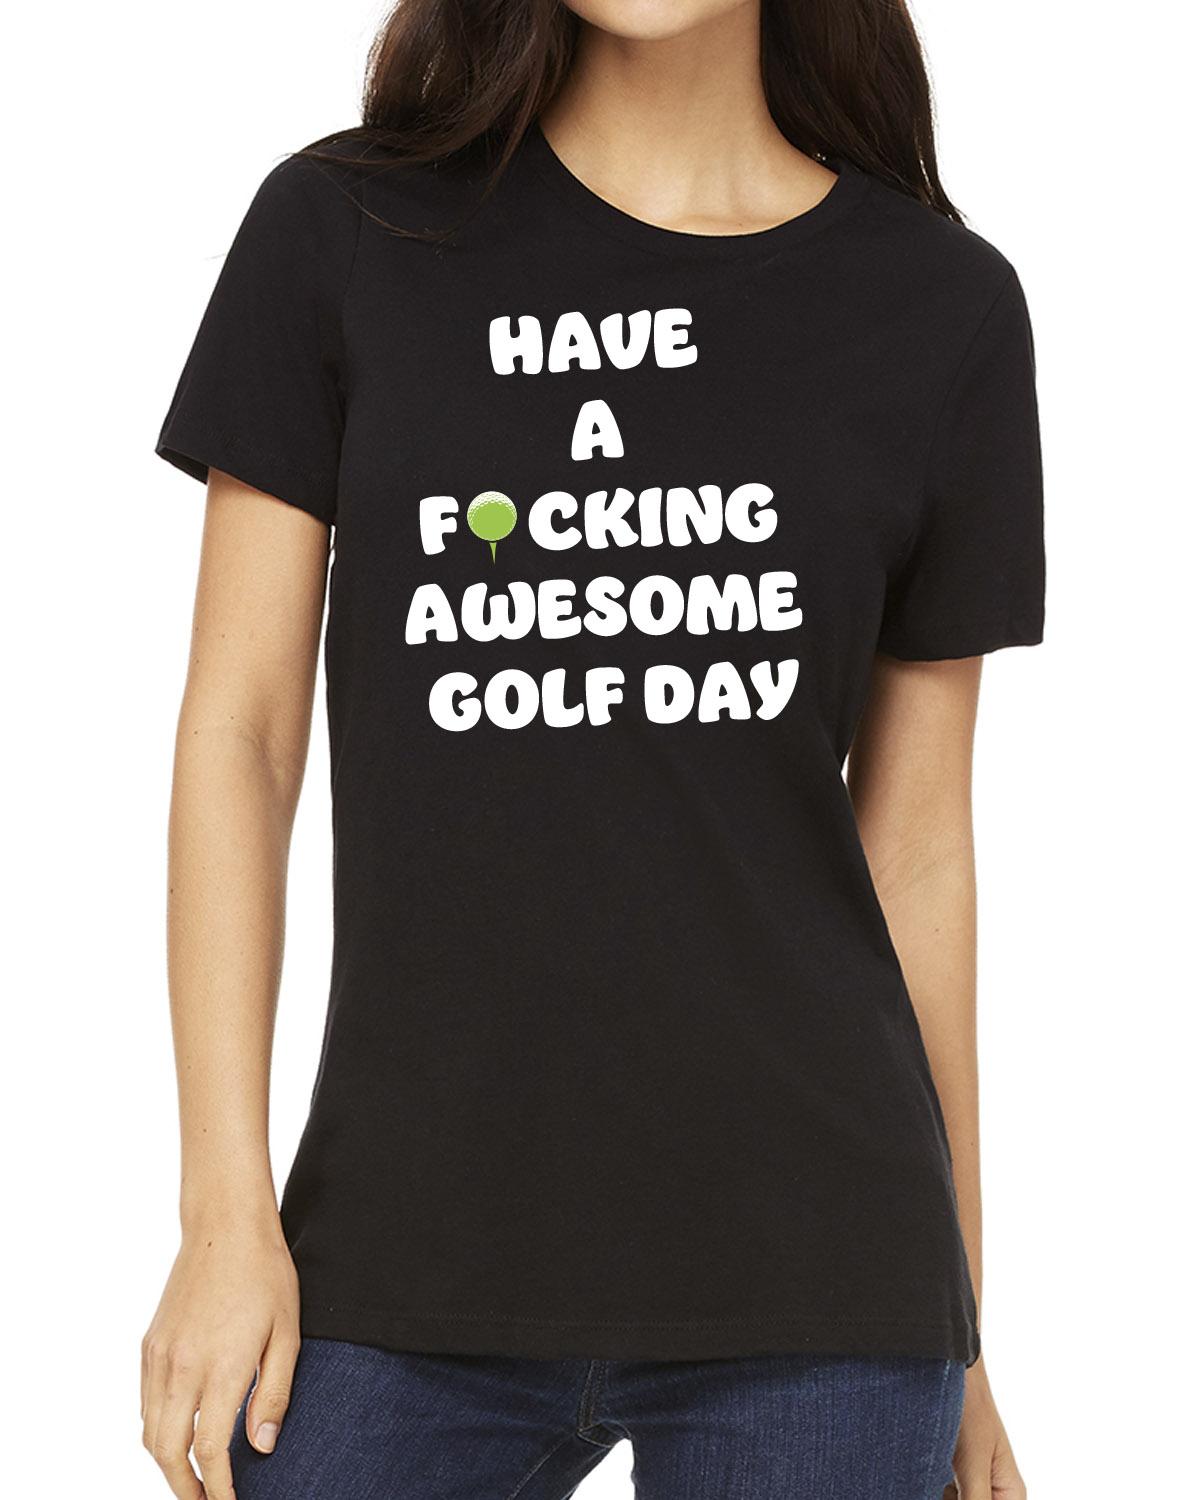 Women's Have a F*cking Awesome Golf Day T-shirt (black)